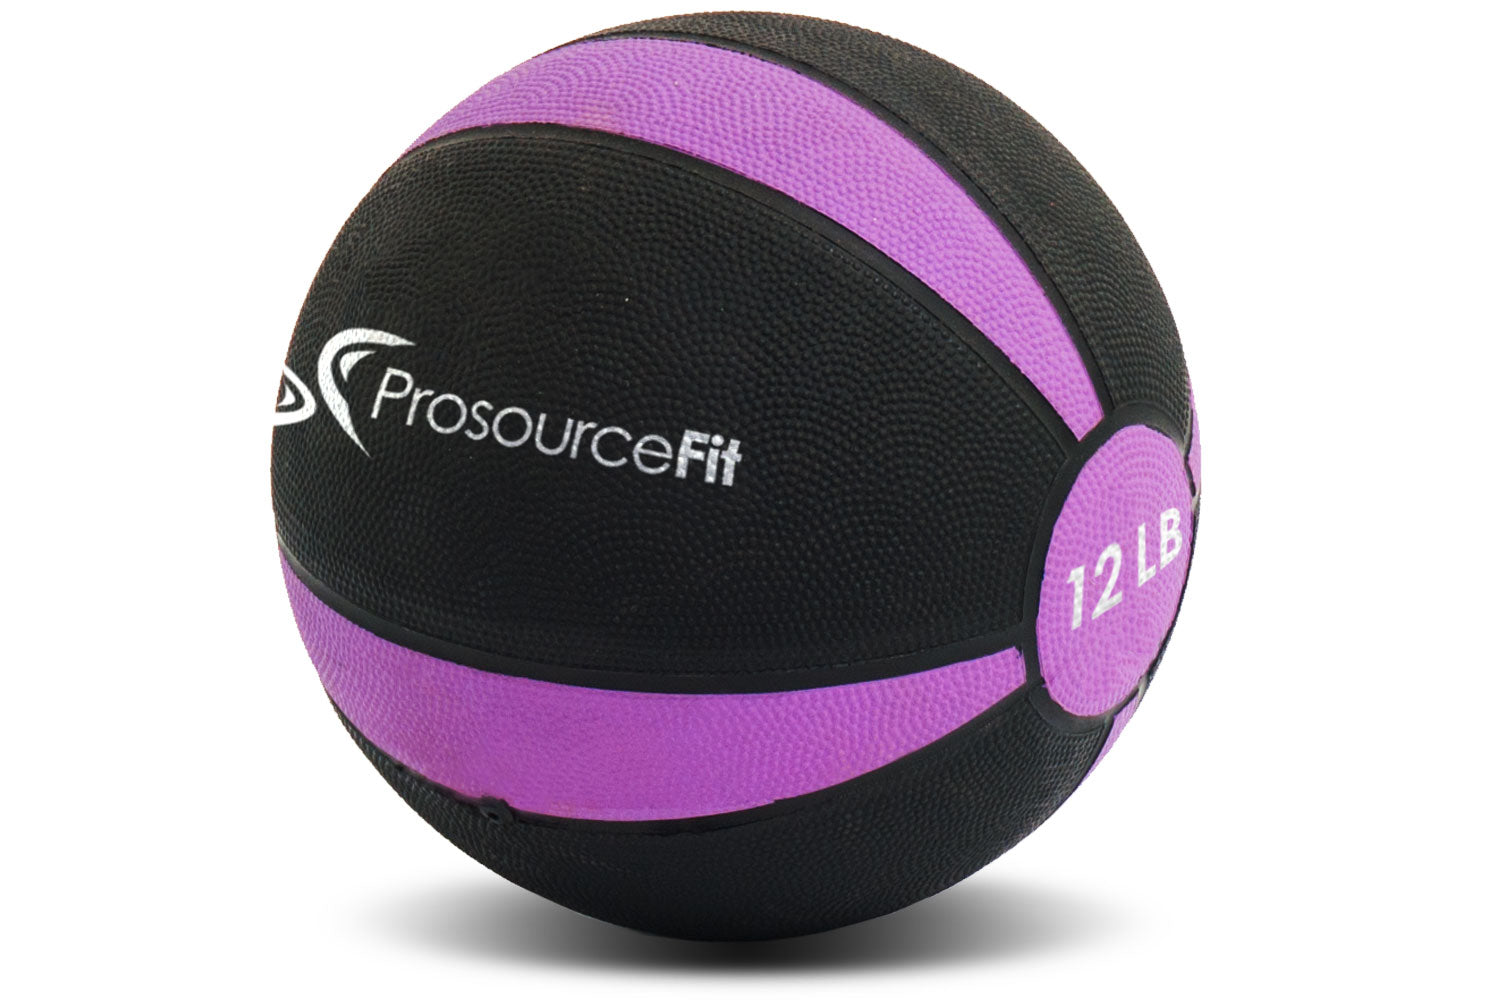 12 lb Rubber Medicine Ball